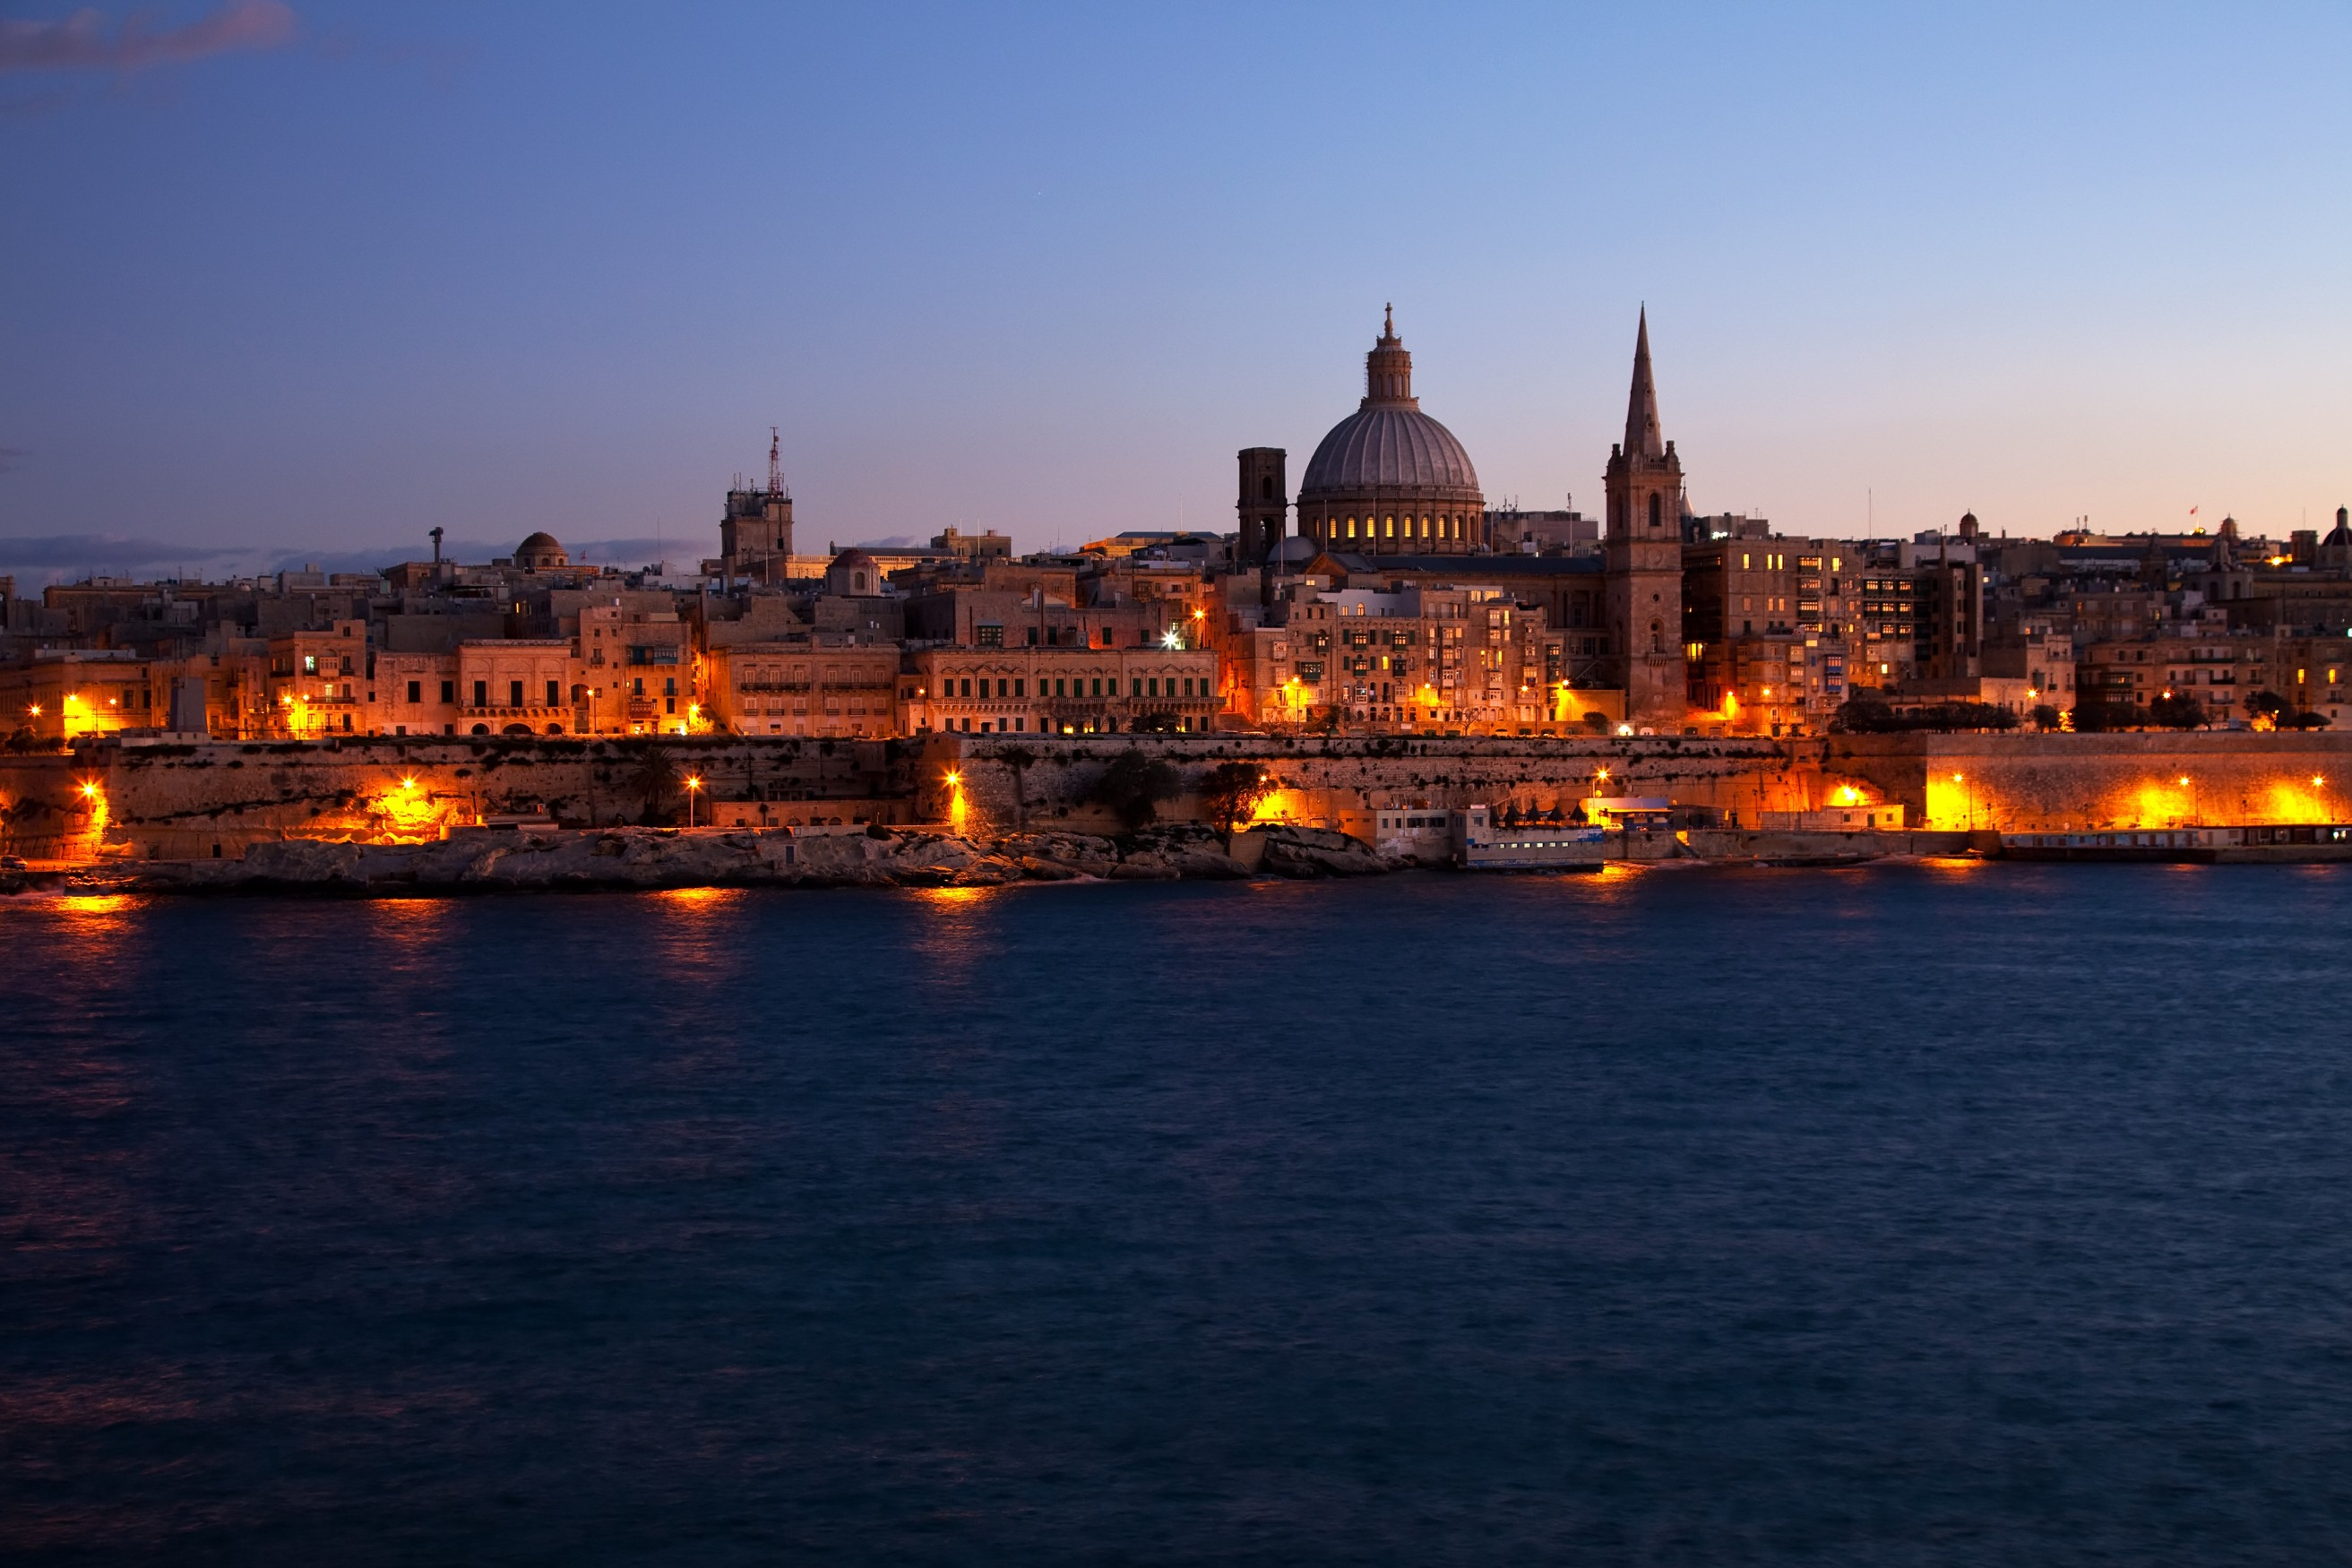 Why Are Most Online Casinos Located On The Island of Malta?